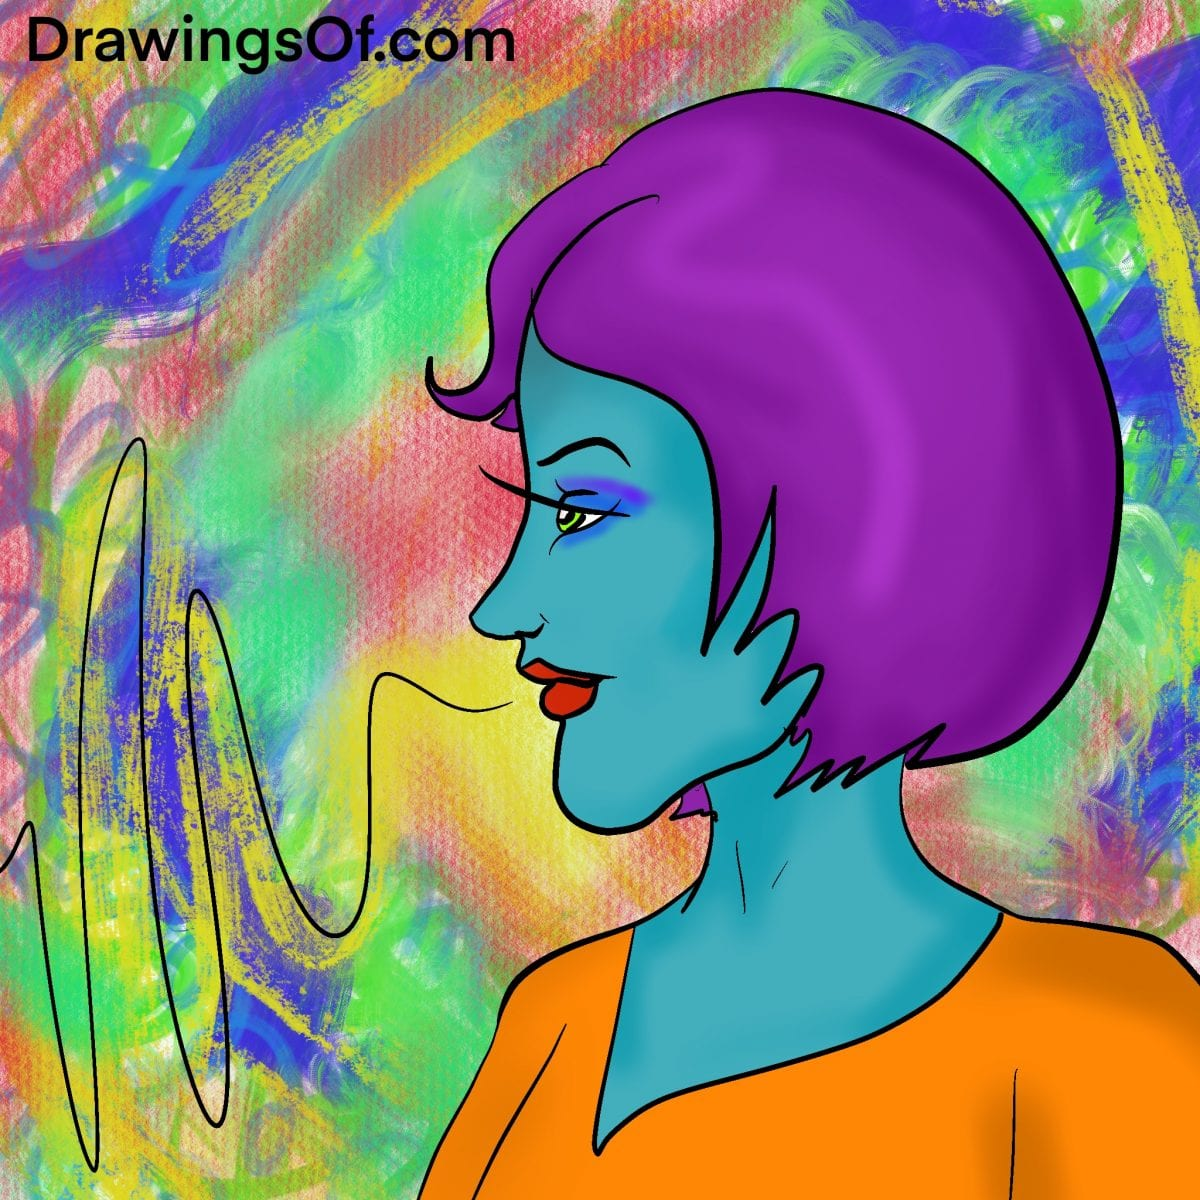 Blue skin purple hair drawing of a woman